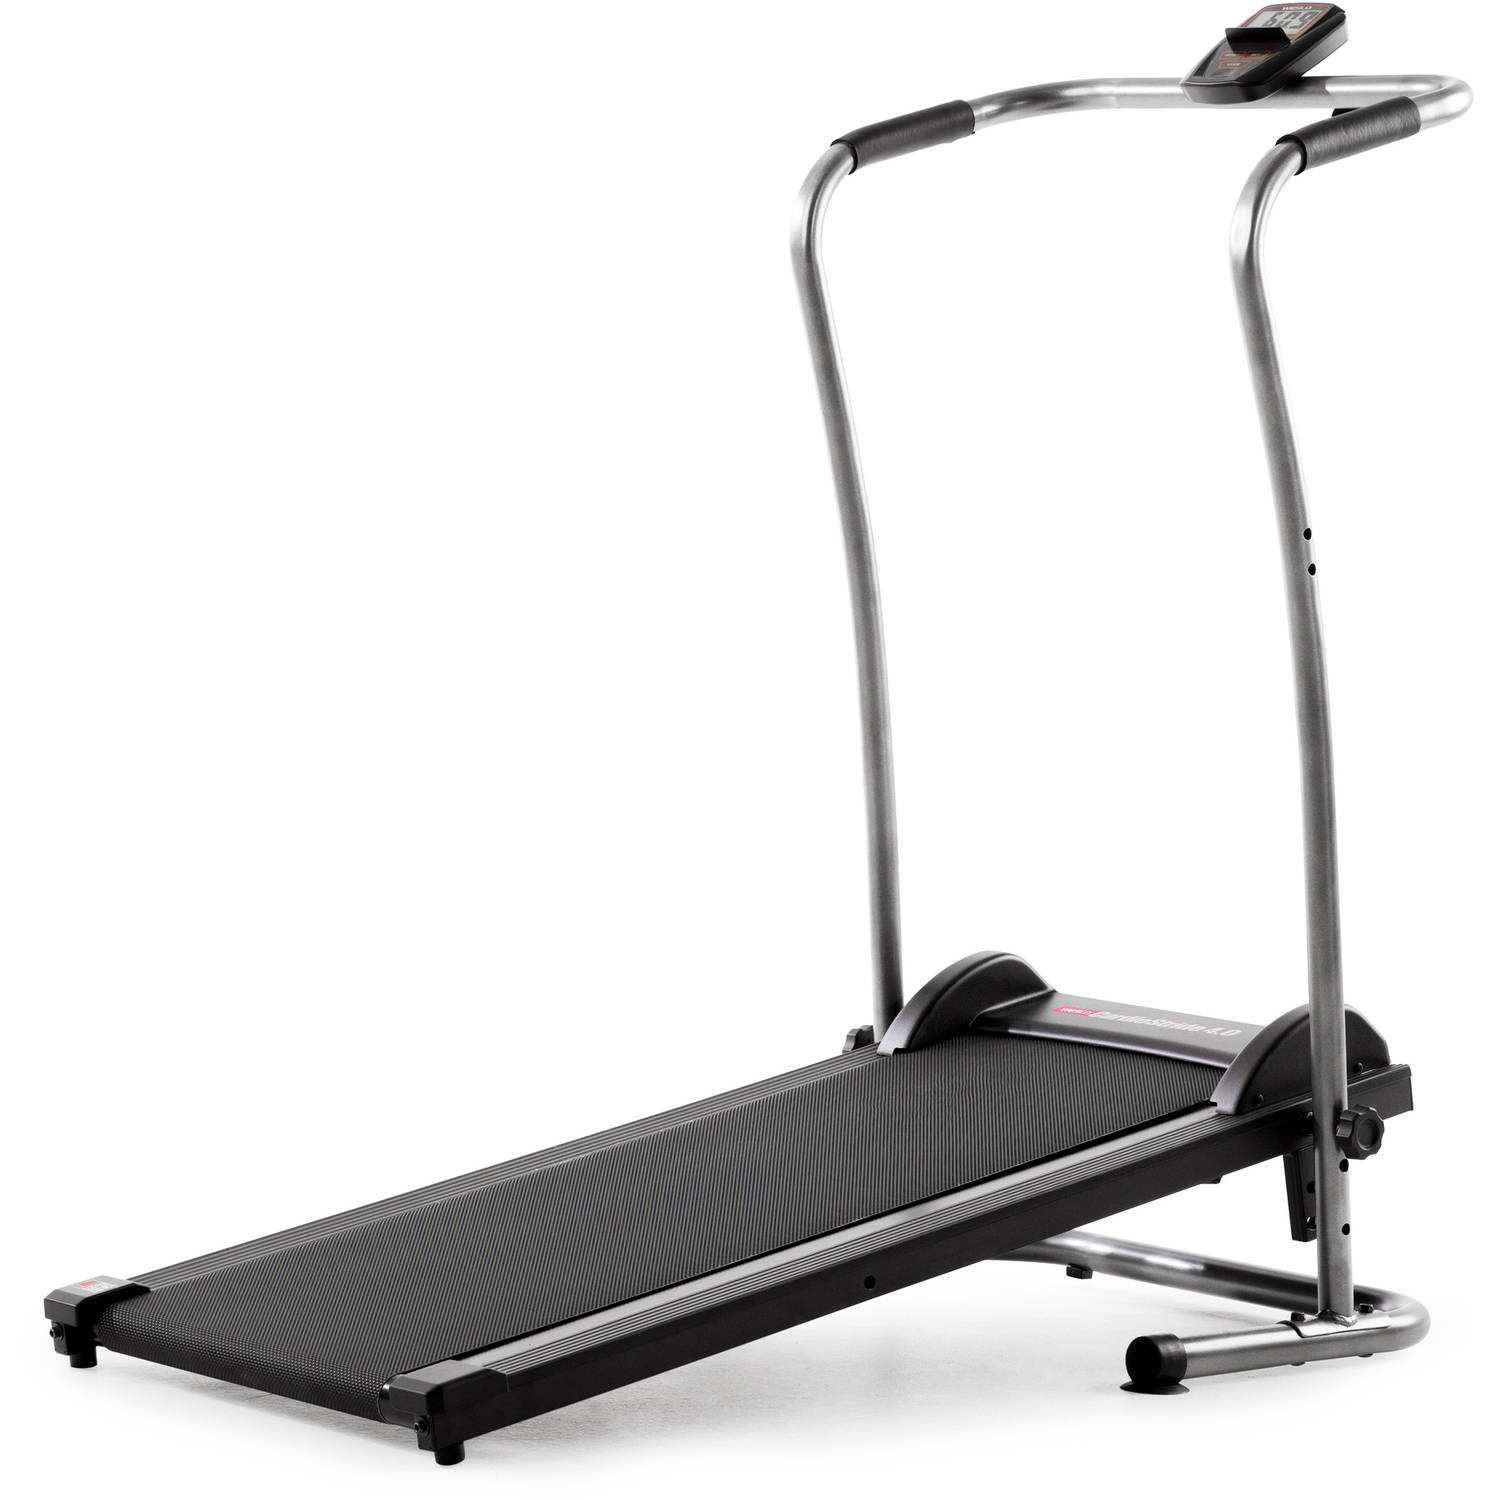 Weslo Cardiostride 4.0 Review – Weslo Manual Treadmill – UPDATED 2017